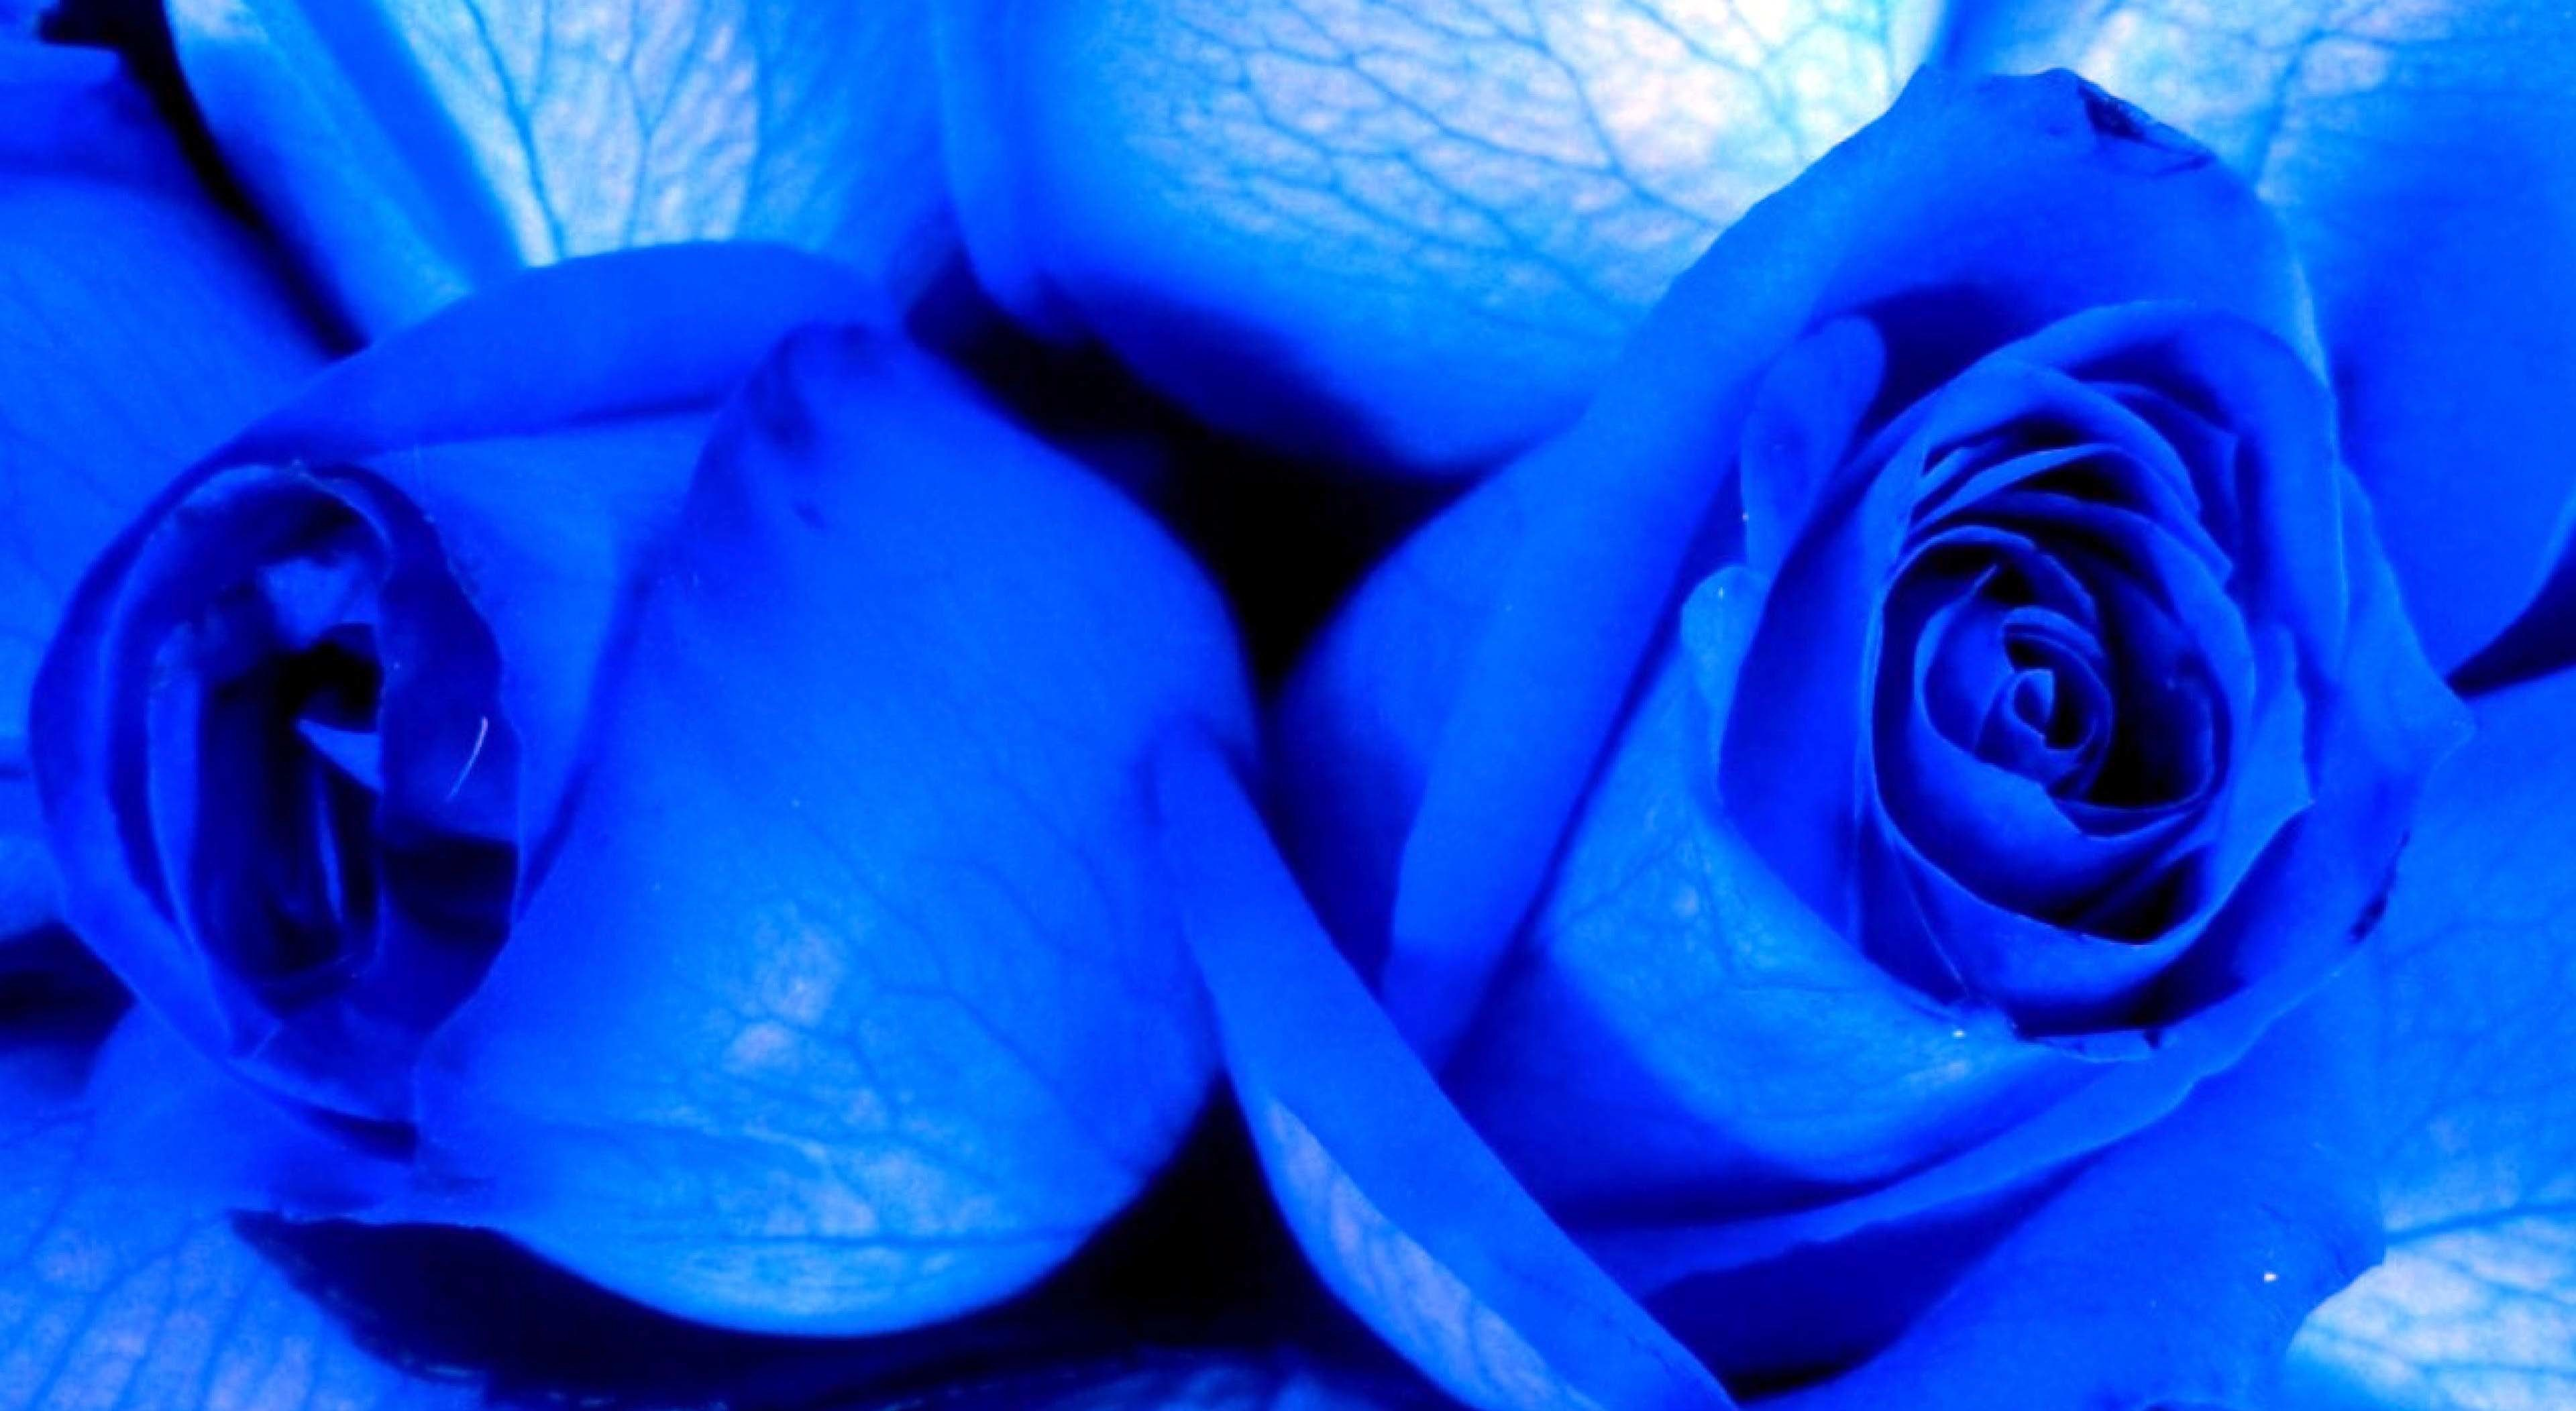 Blue Roses Background (48+ Images